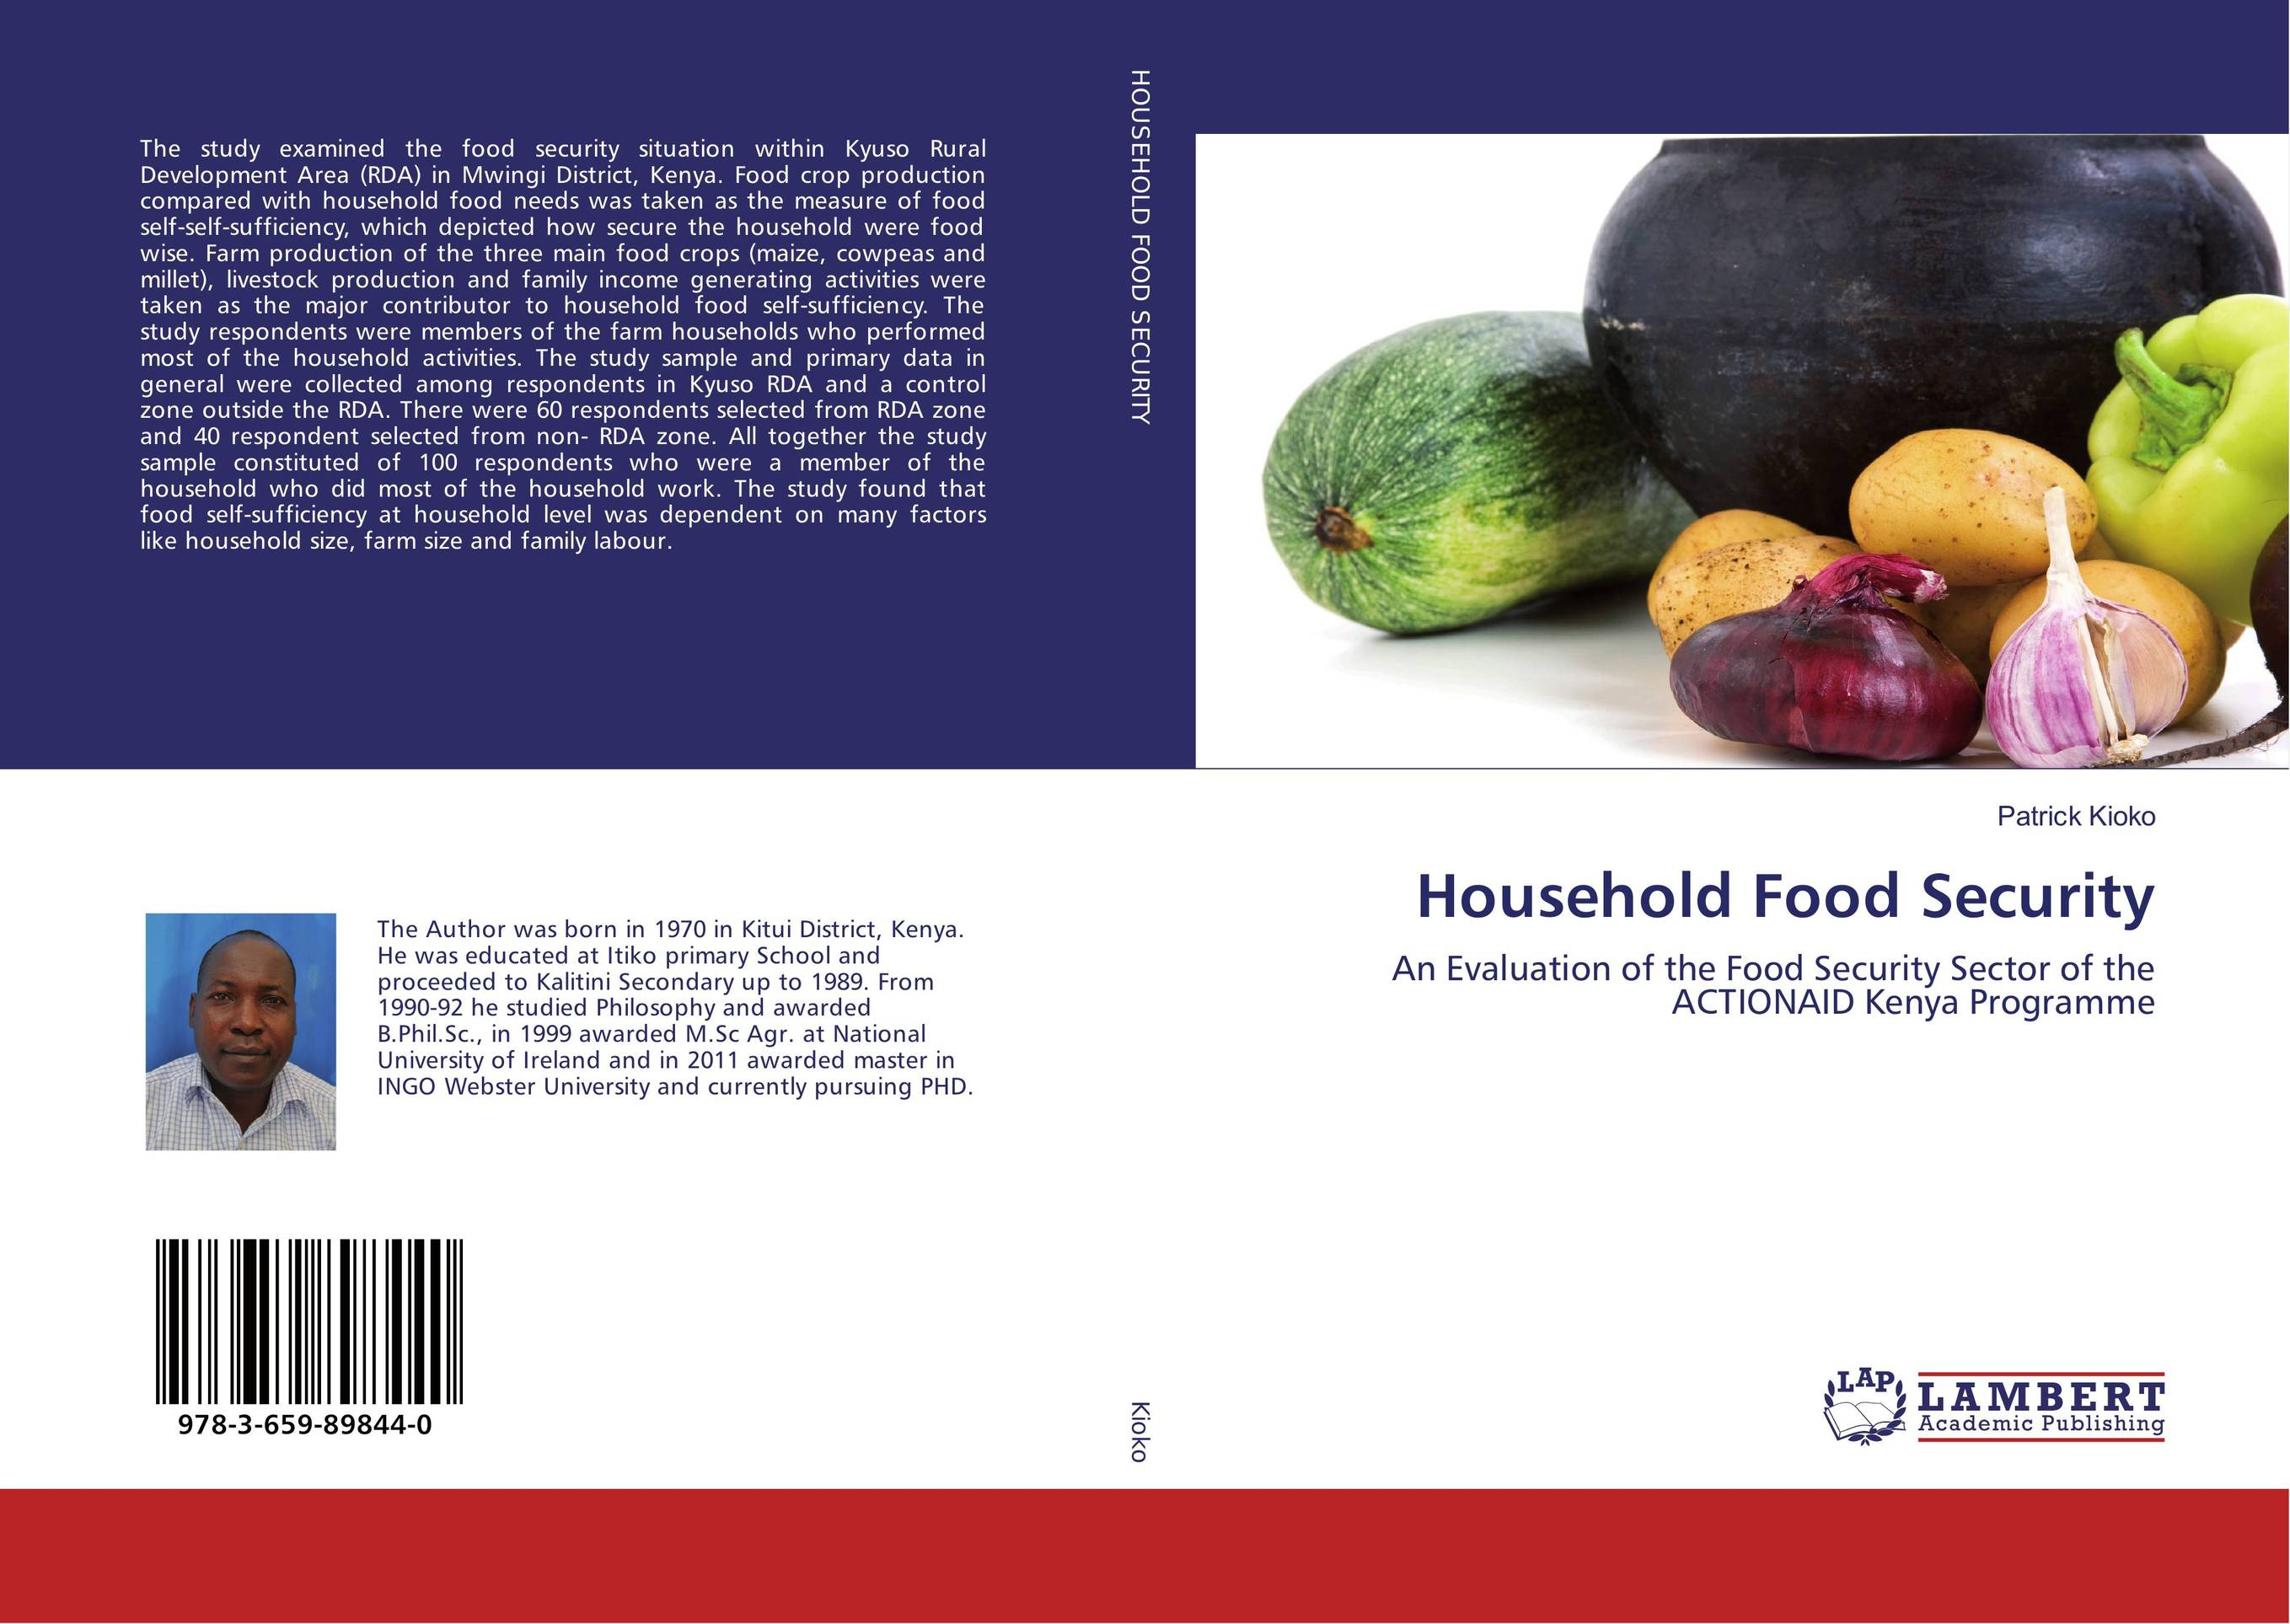 literature review on food security in kenya A recent review of the current literature and available data, conducted by the kenya dairy nationally appropriate mitigation action , with support from the cgiar research program on climate change, agriculture and food security , aims to understand biogas adoption patterns amongst women and men.